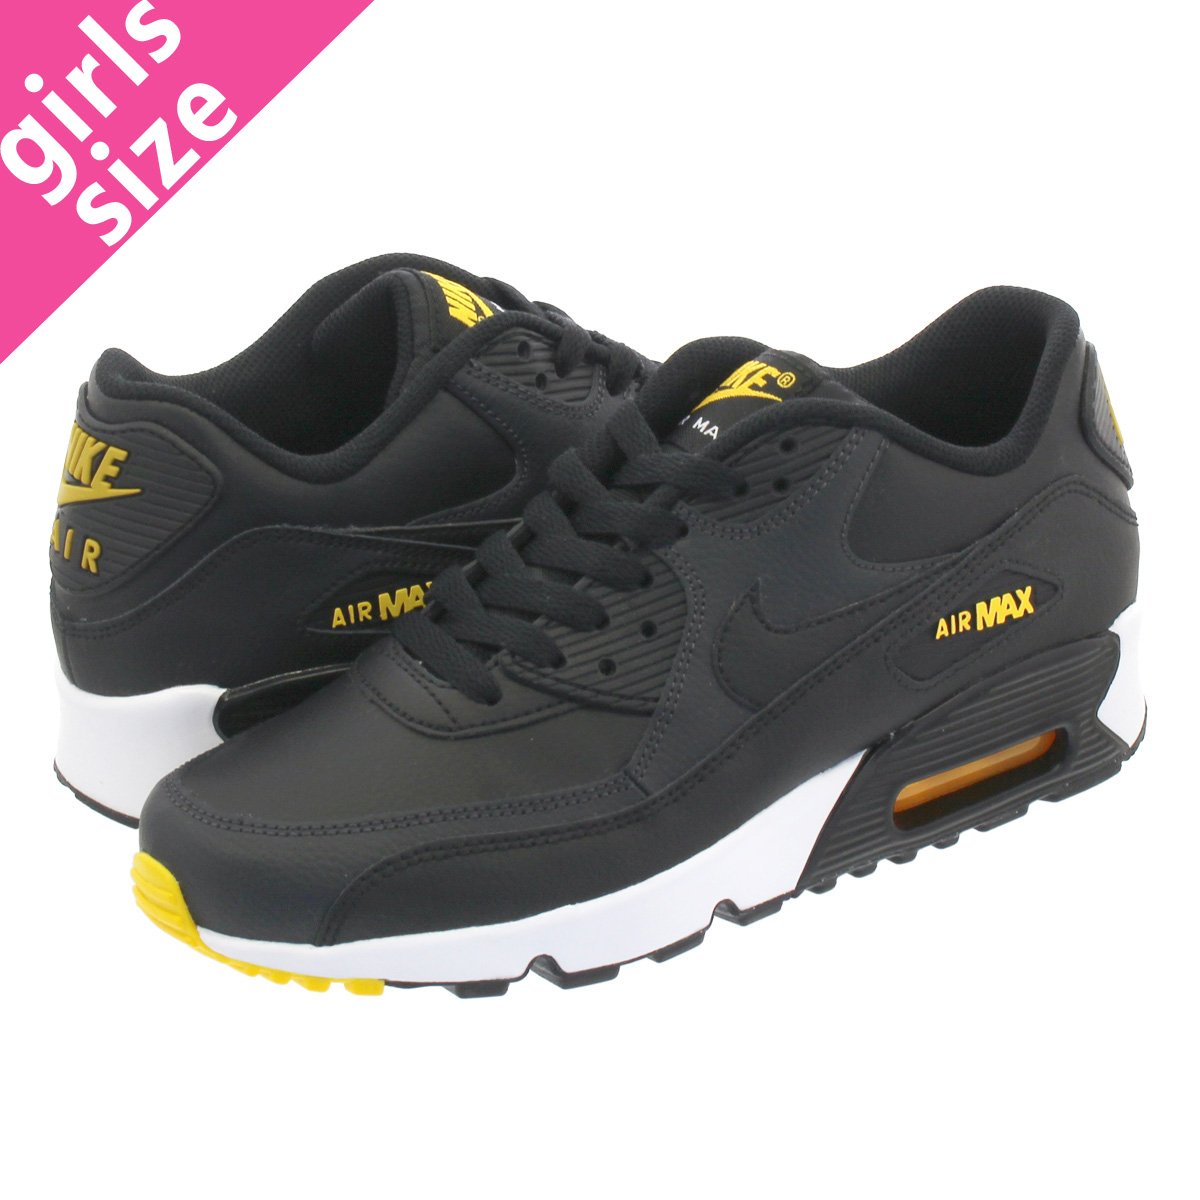 newest 9a4d4 223ea NIKE AIR MAX 90 LTR GS Kie Ney AMAX 90 leather GS BLACK/AMARILLO/ANTHRACITE  833,412-029